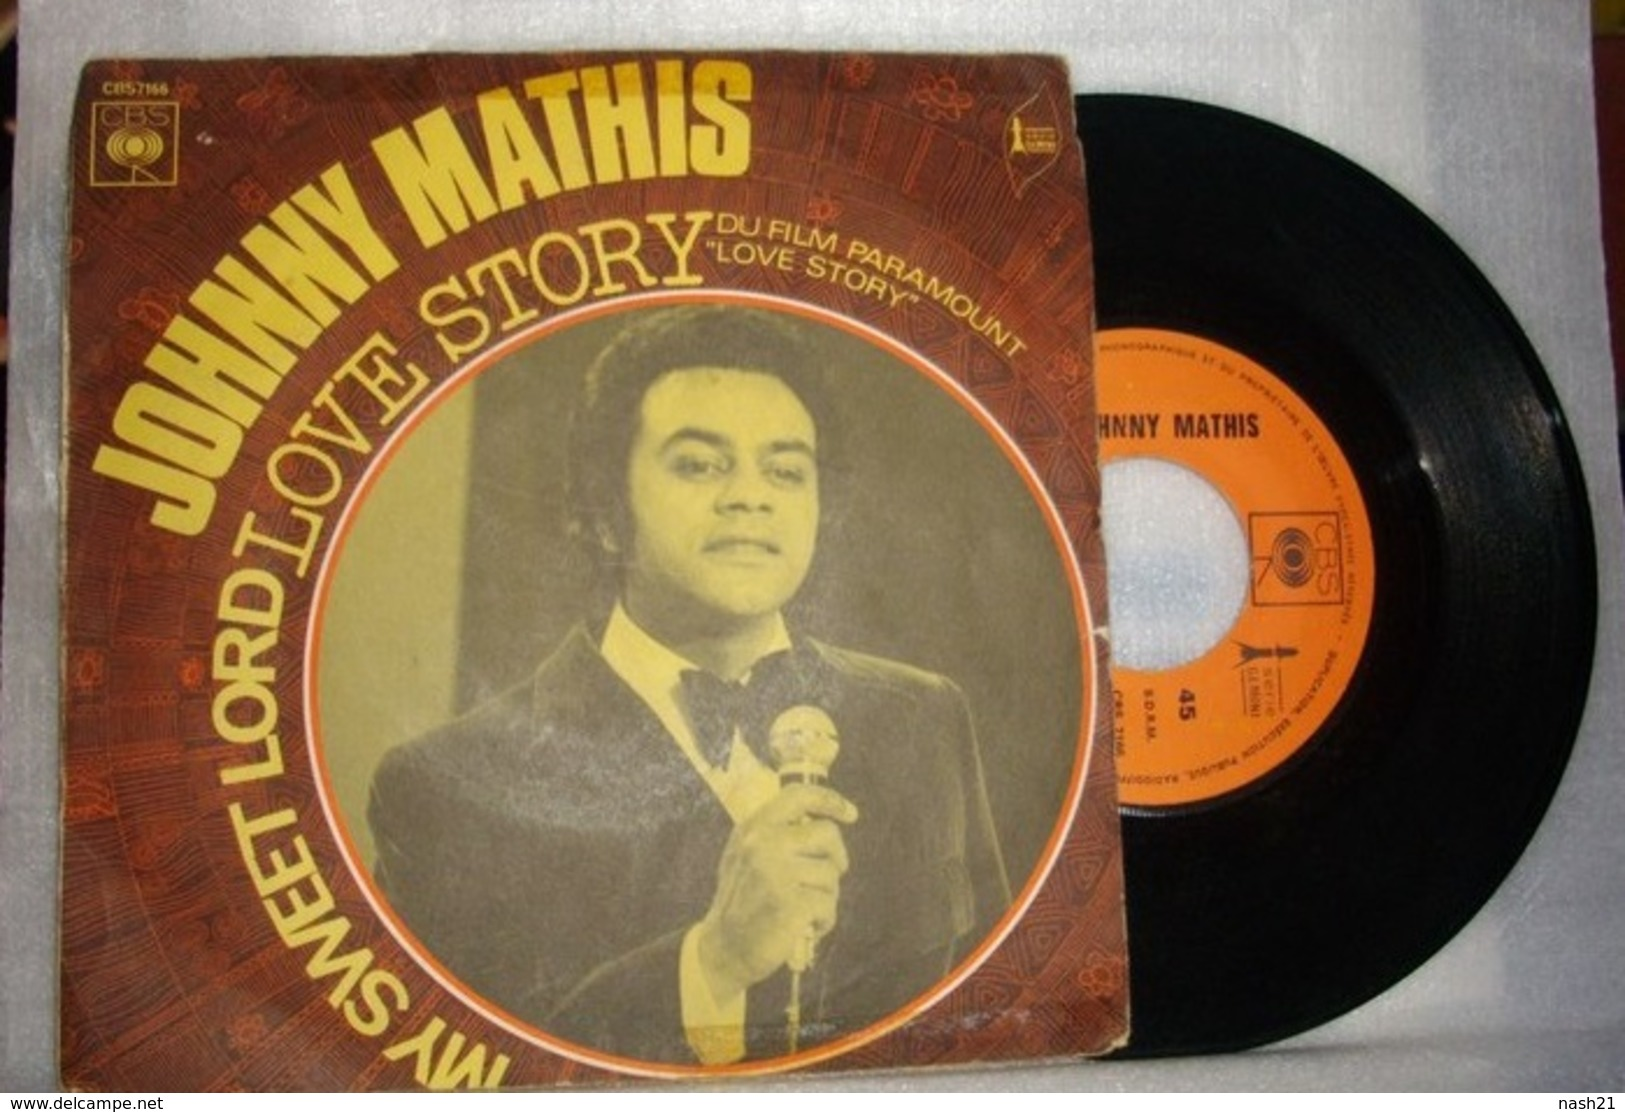 1994 - Disque 45 T -  ' My Sweet Lord ' Par Johnny Mathis - Disco, Pop